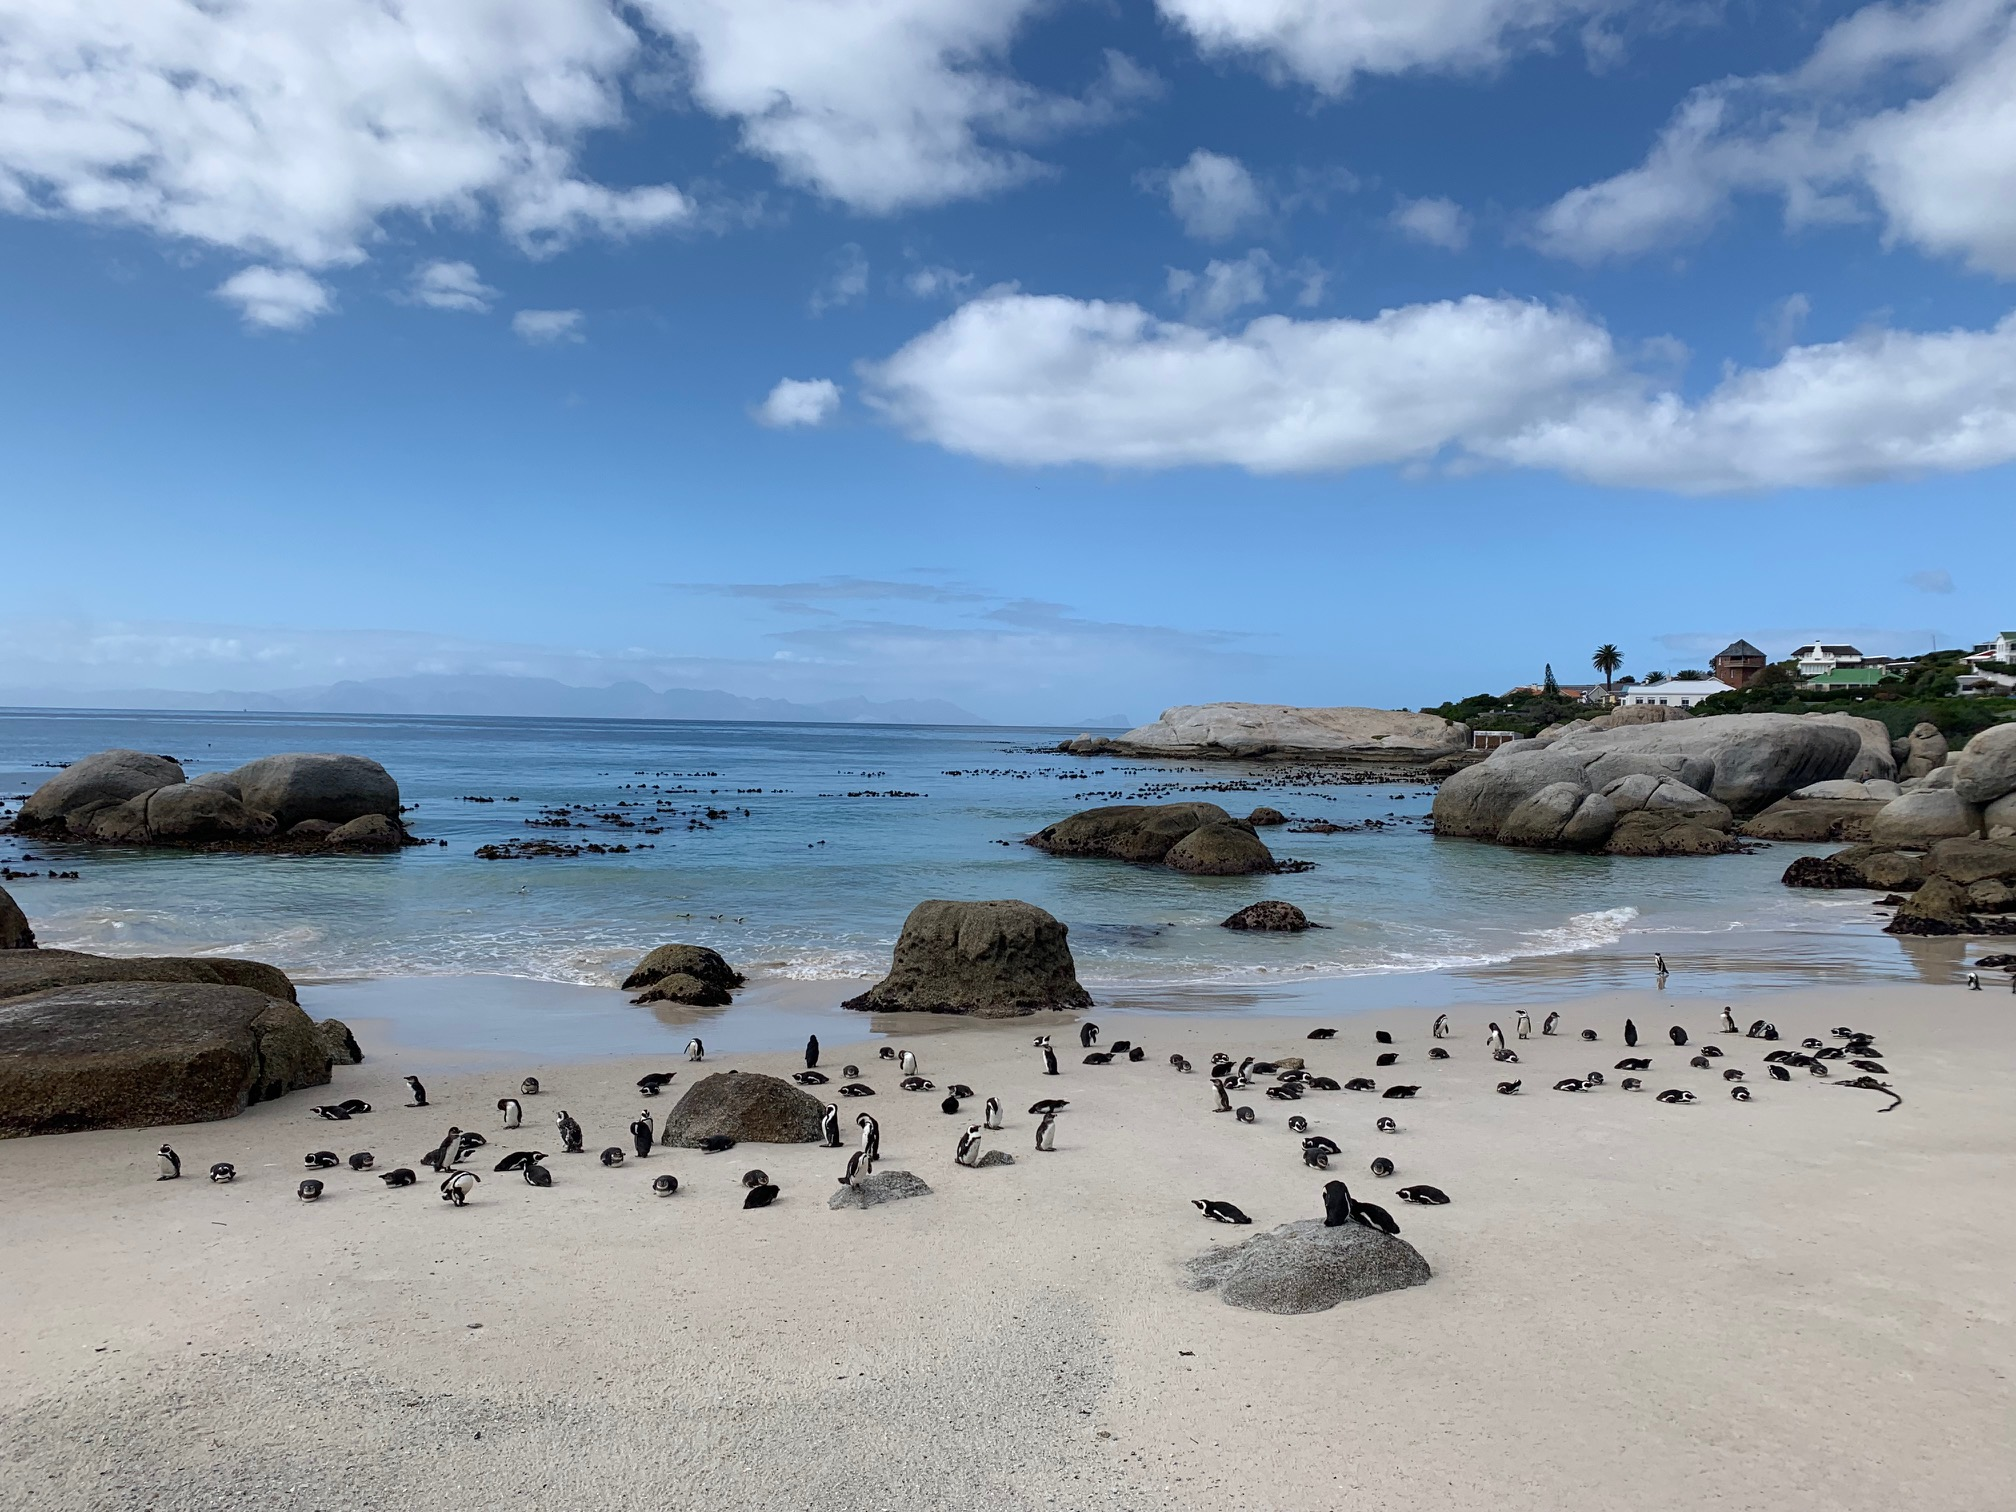 A day on Cape Peninsula, South Africa